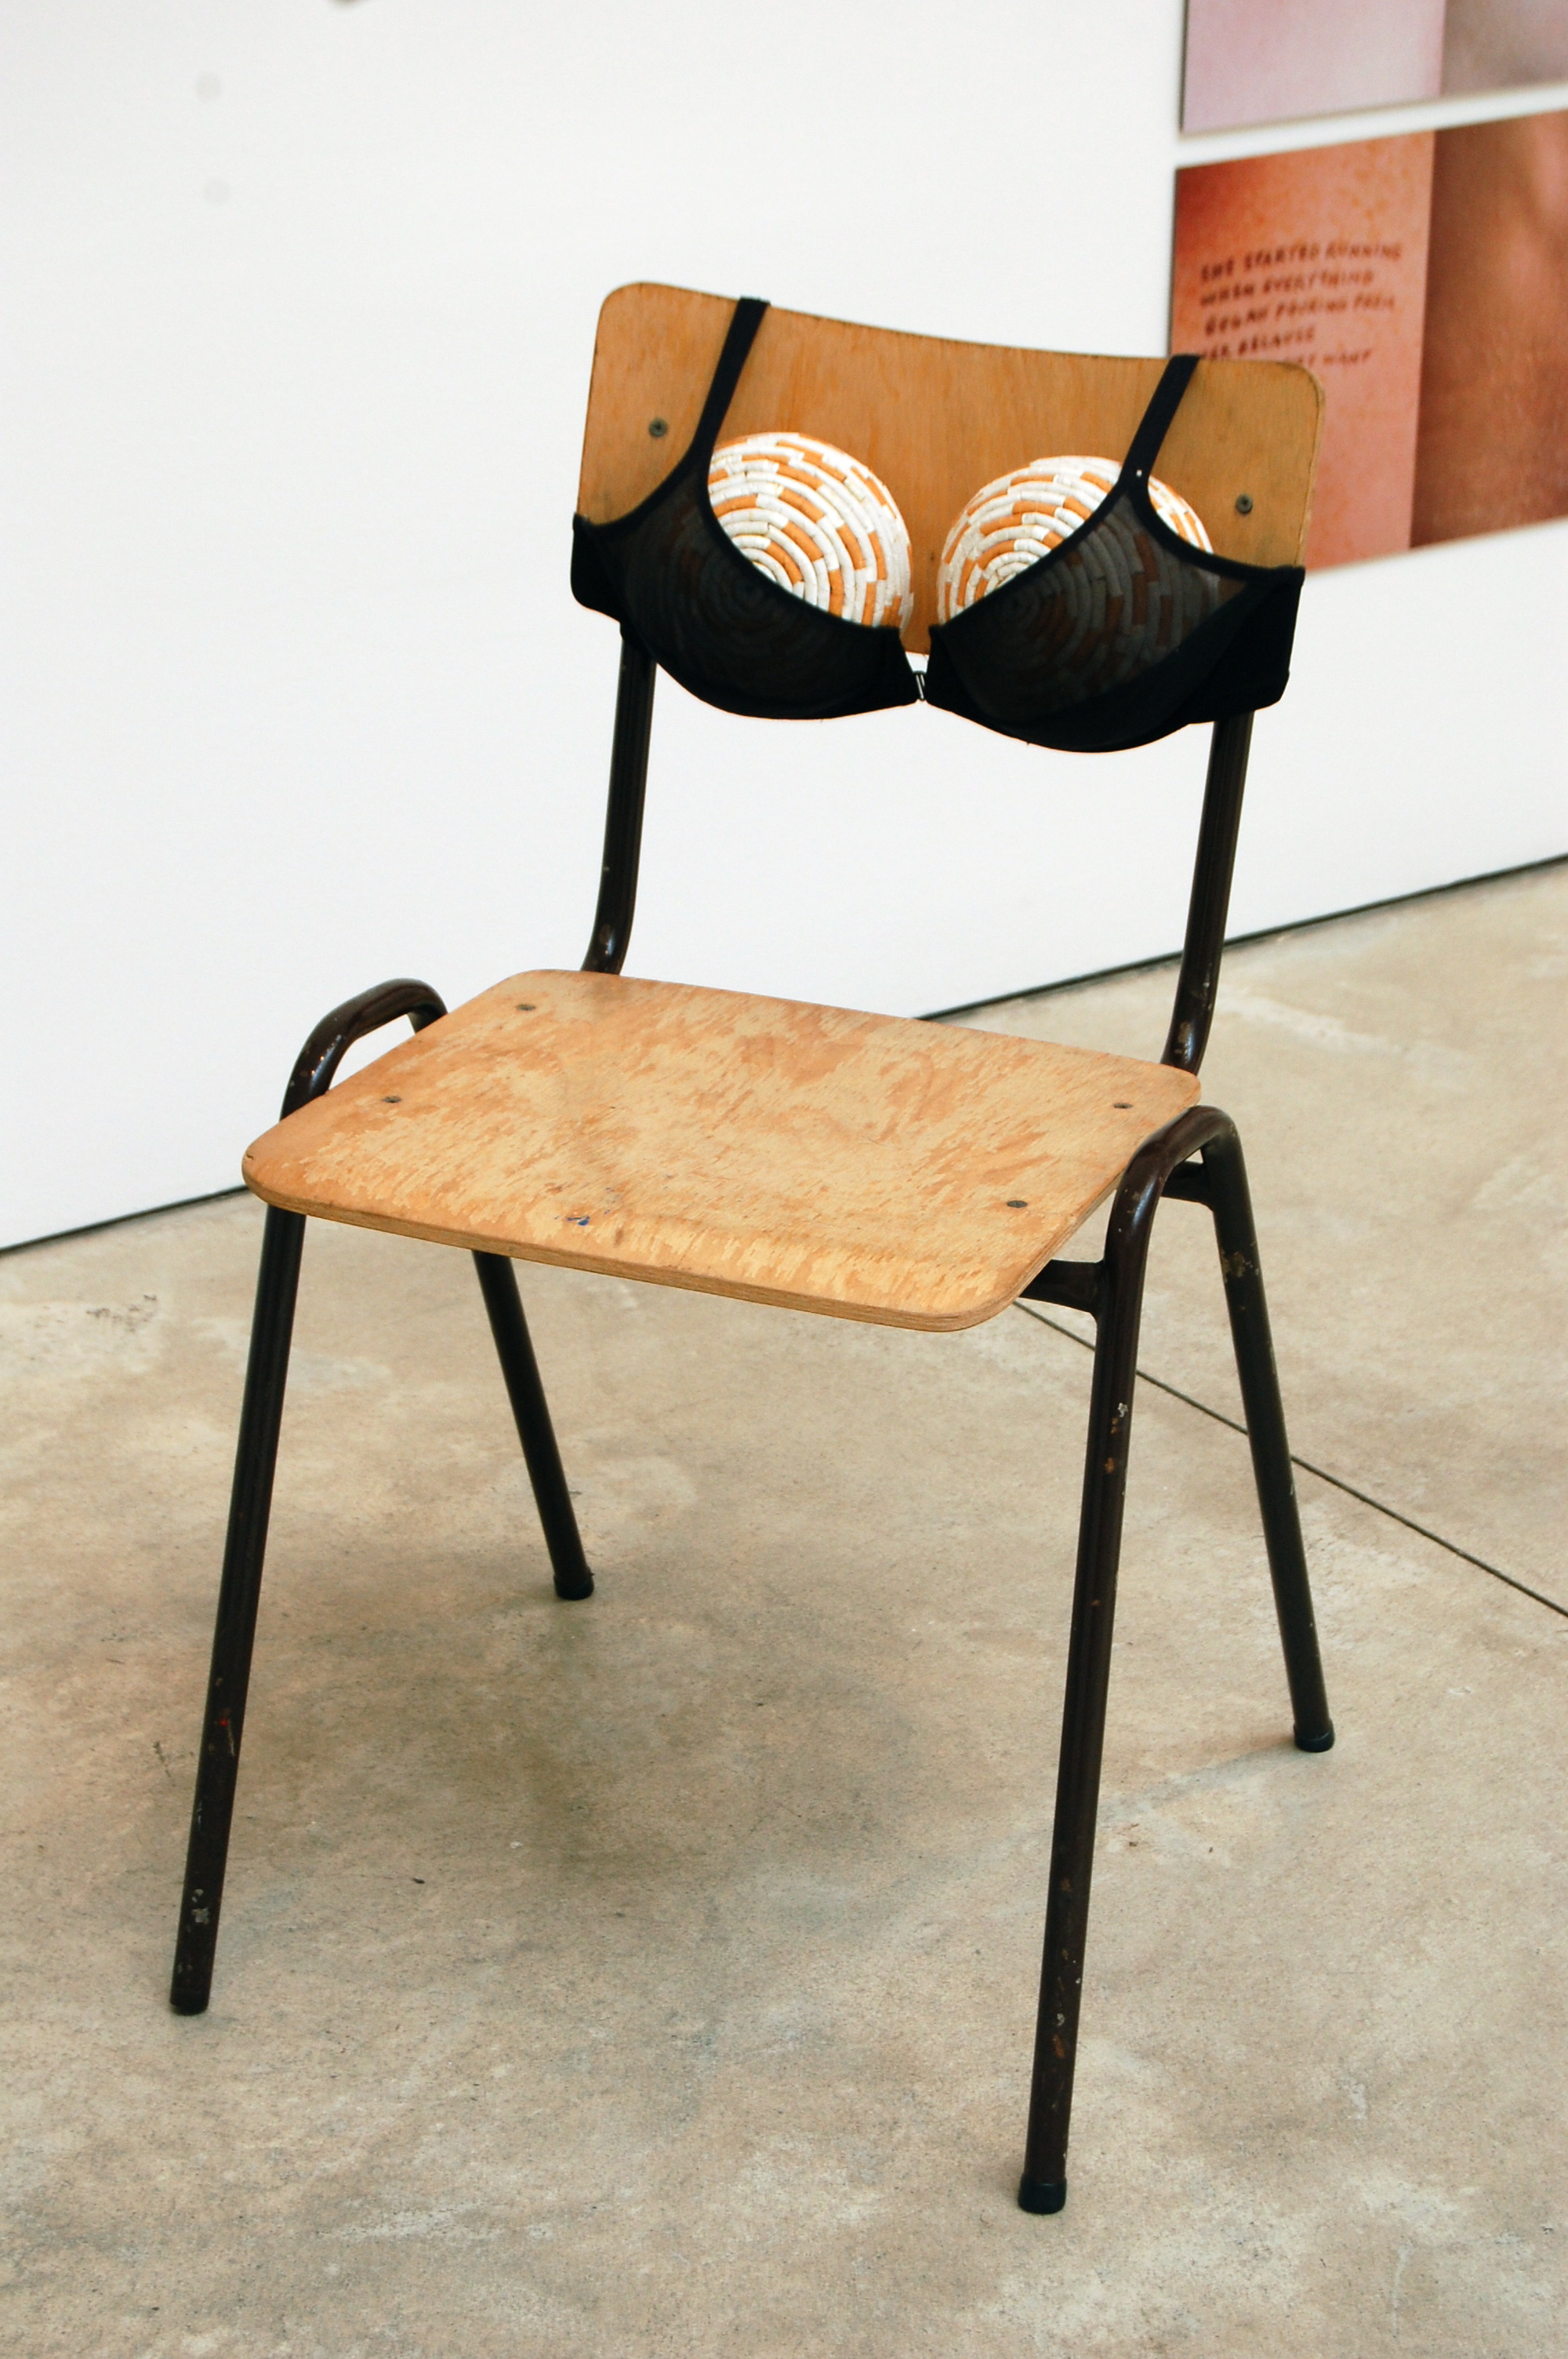 File:Sarah Lucas, Cigarette T s II (Idealized Smoker's Chest II), 1999.jpg  - Wikimedia Commons